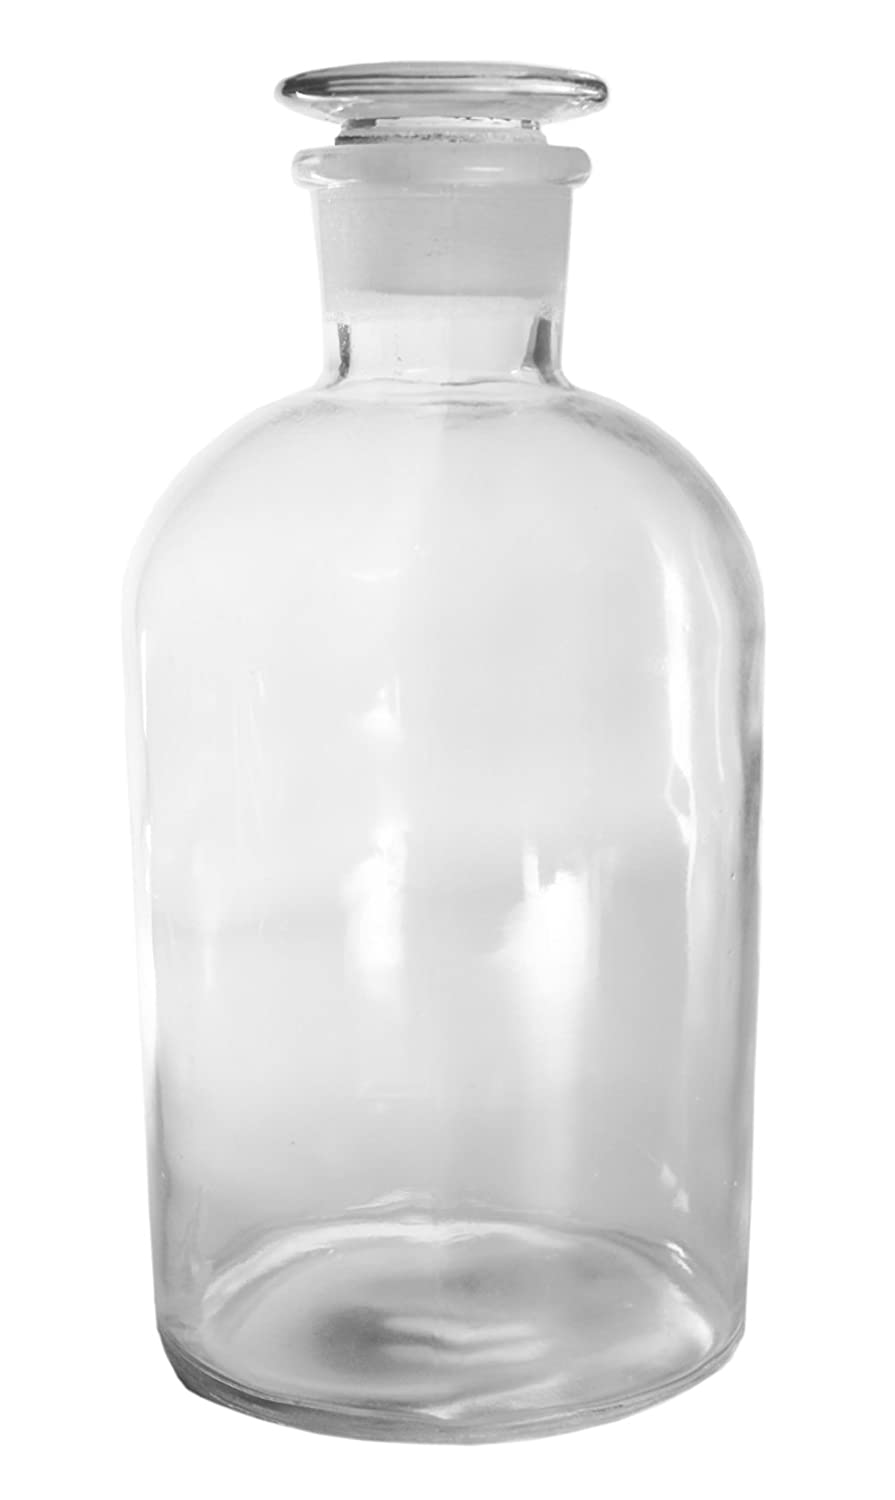 New Shipping Max 48% OFF Free SEOH 1000ml Capacity Clear Reagent Glass Bottle